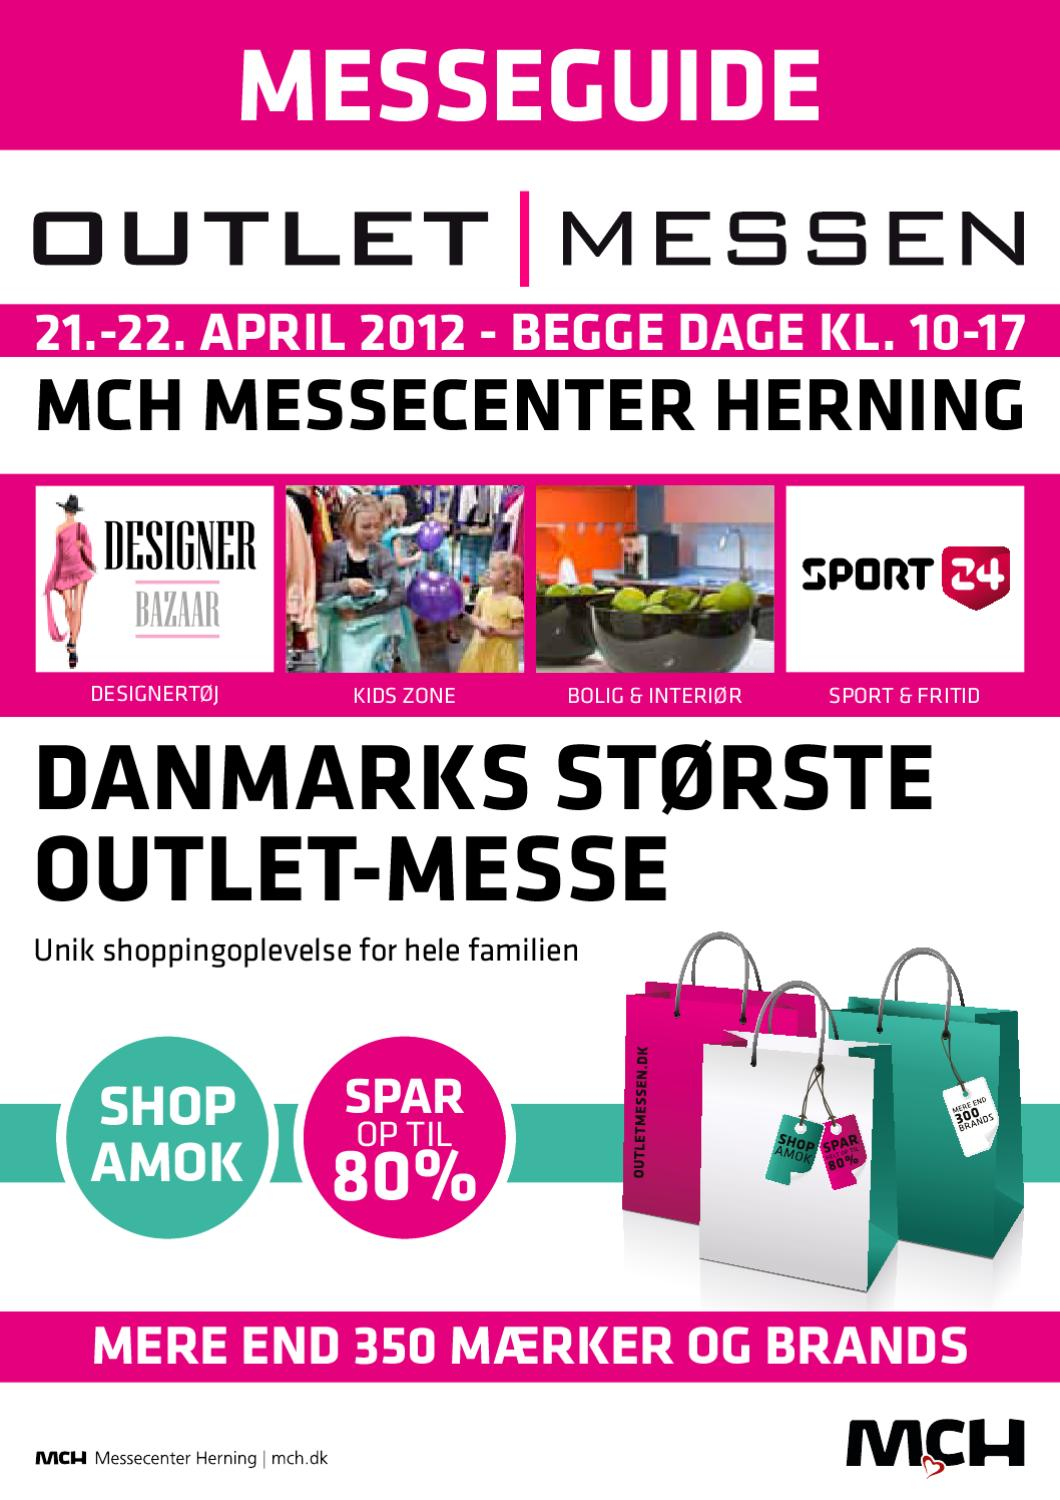 Messeguide Outlet Messen forår 2012 by MCH Messecenter